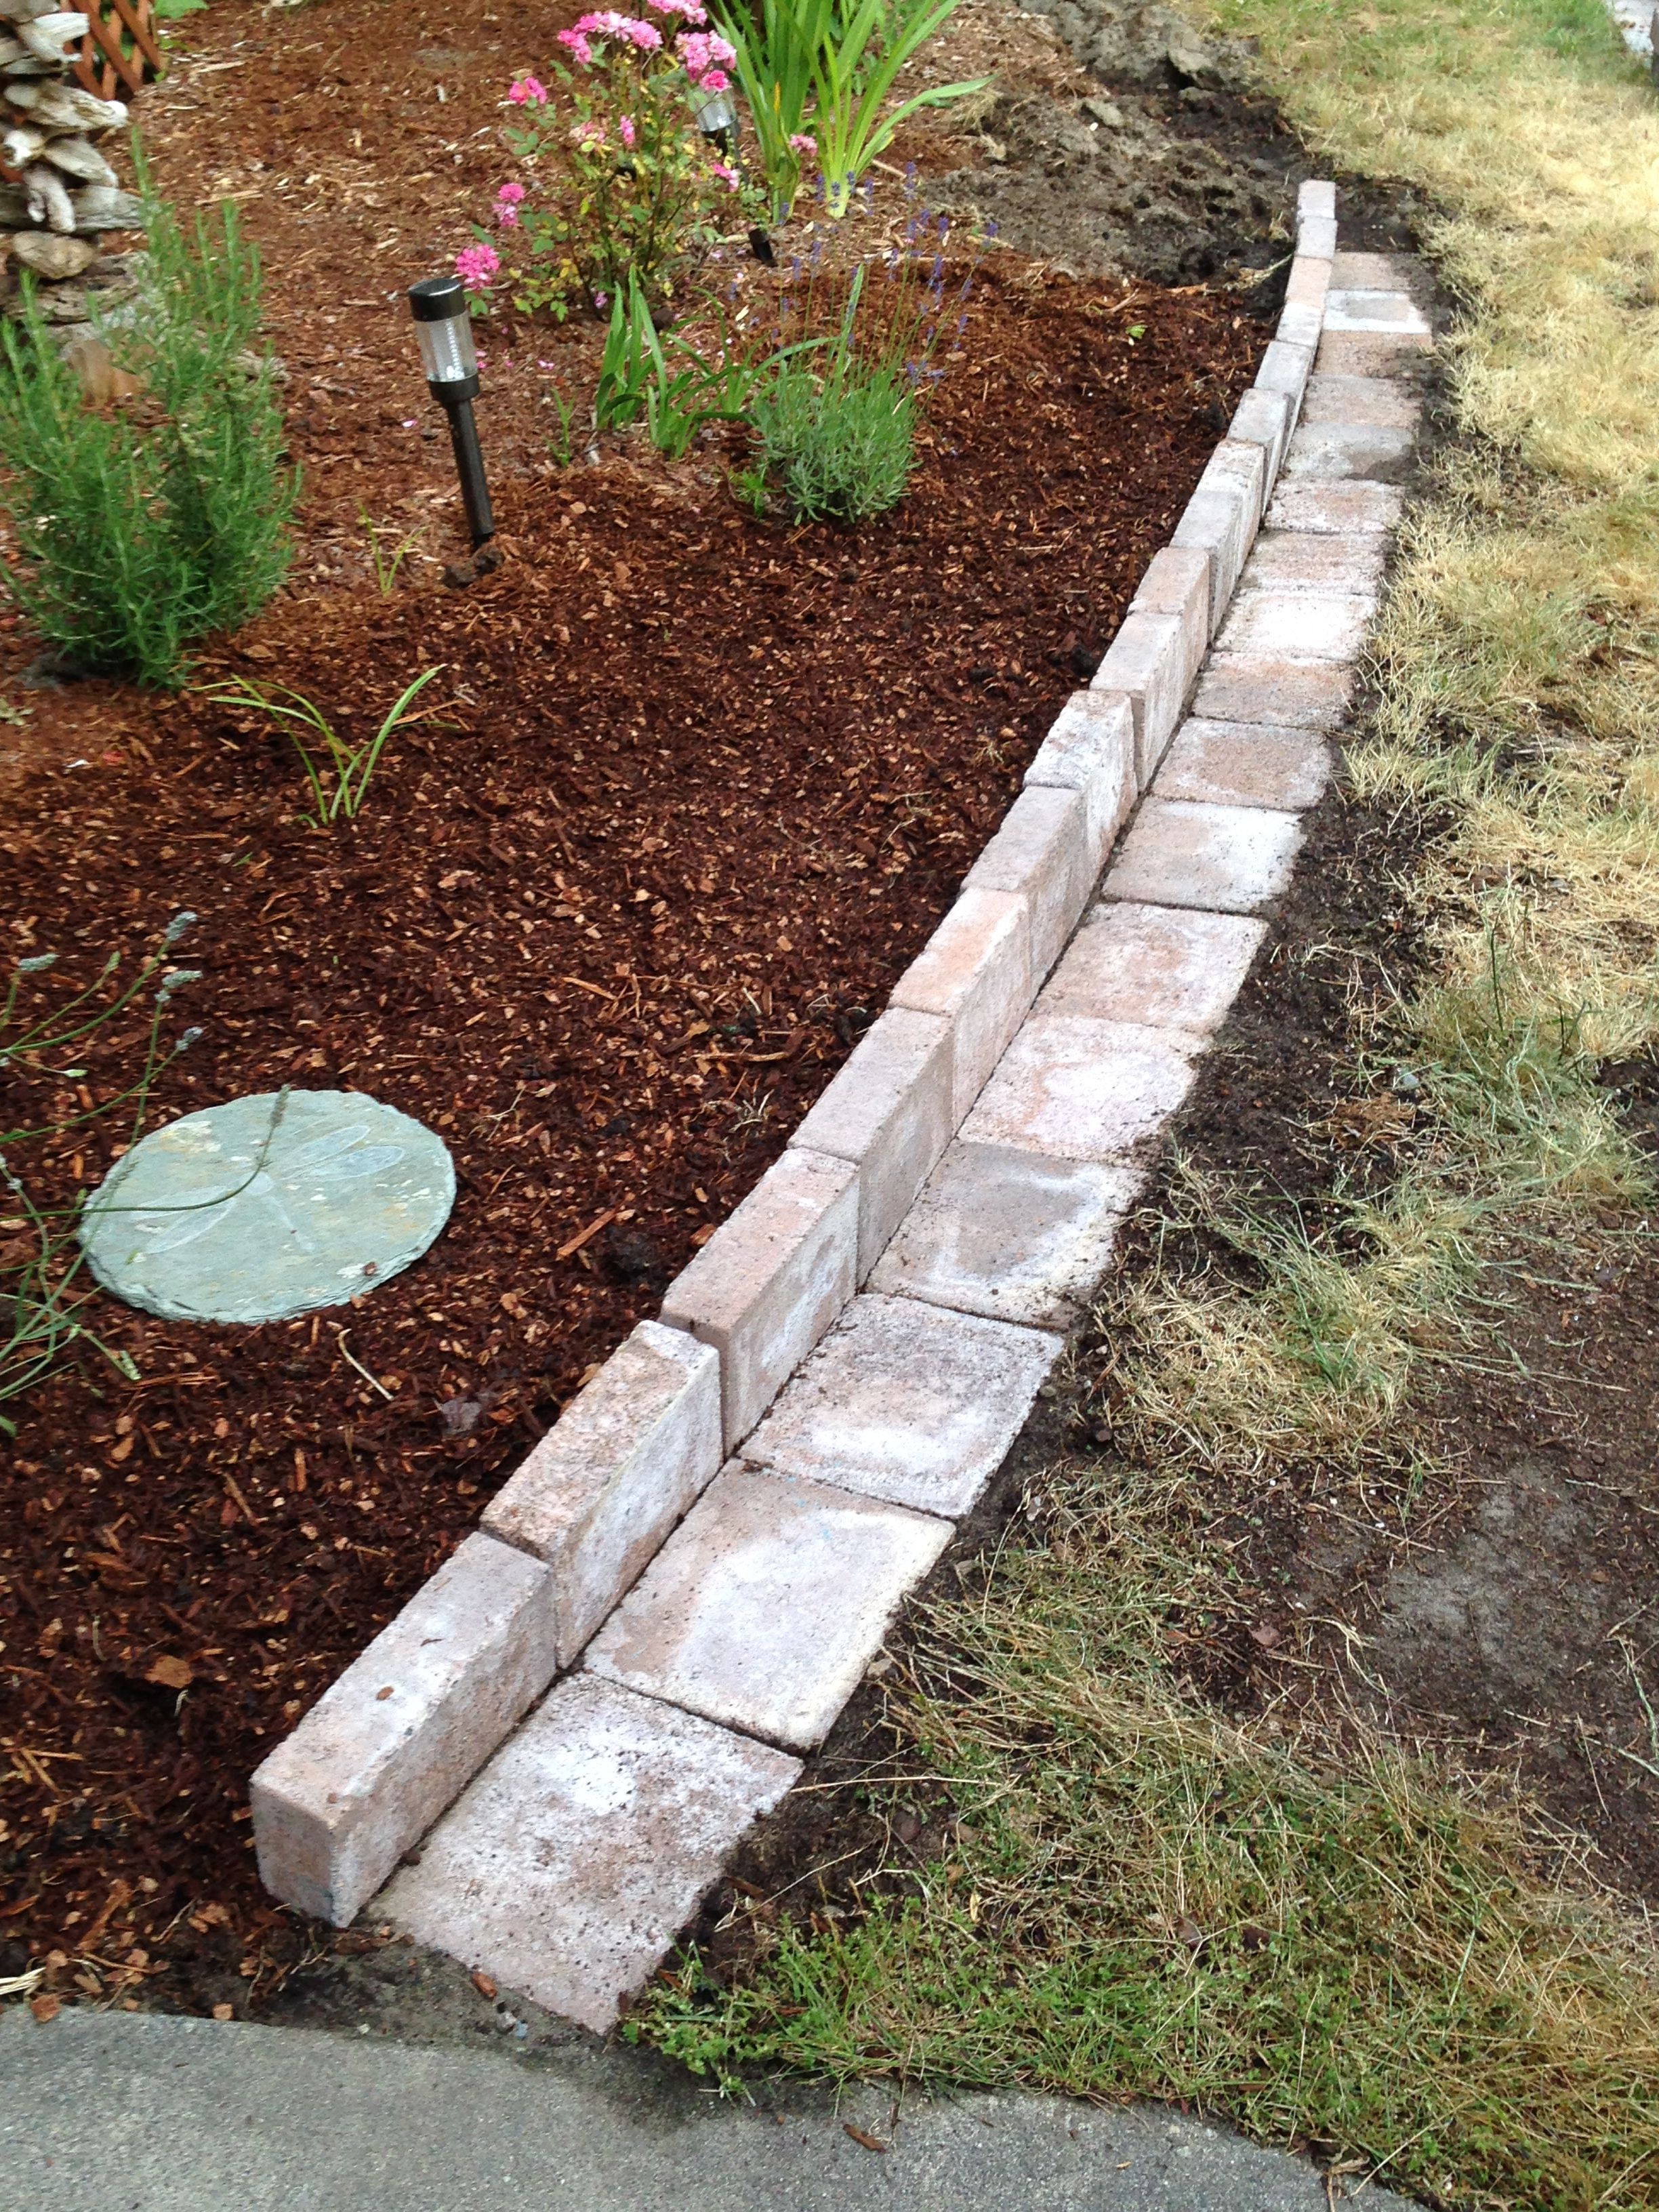 New flower bed border made with pavers.....this style